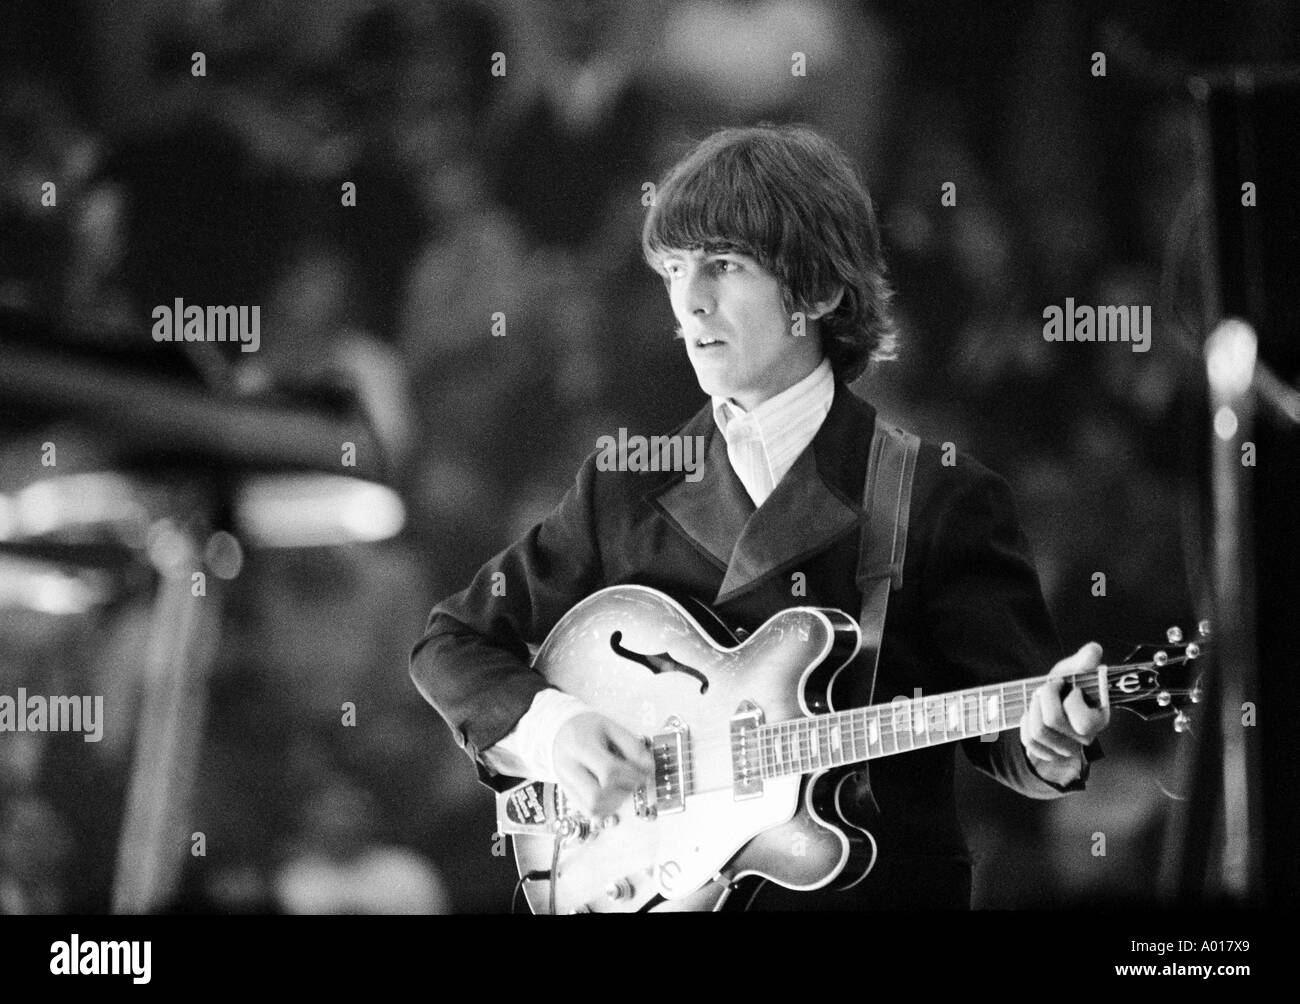 The Beatles, concert in Essen, Ruhr area, Gruga Hall, 1966, 1960s, the sixties, England, London, Great Britain, British pop band, music, musician, group, pop music, singers, George Harrison, guitar, b&w, black and white, black & white photography - Stock Image